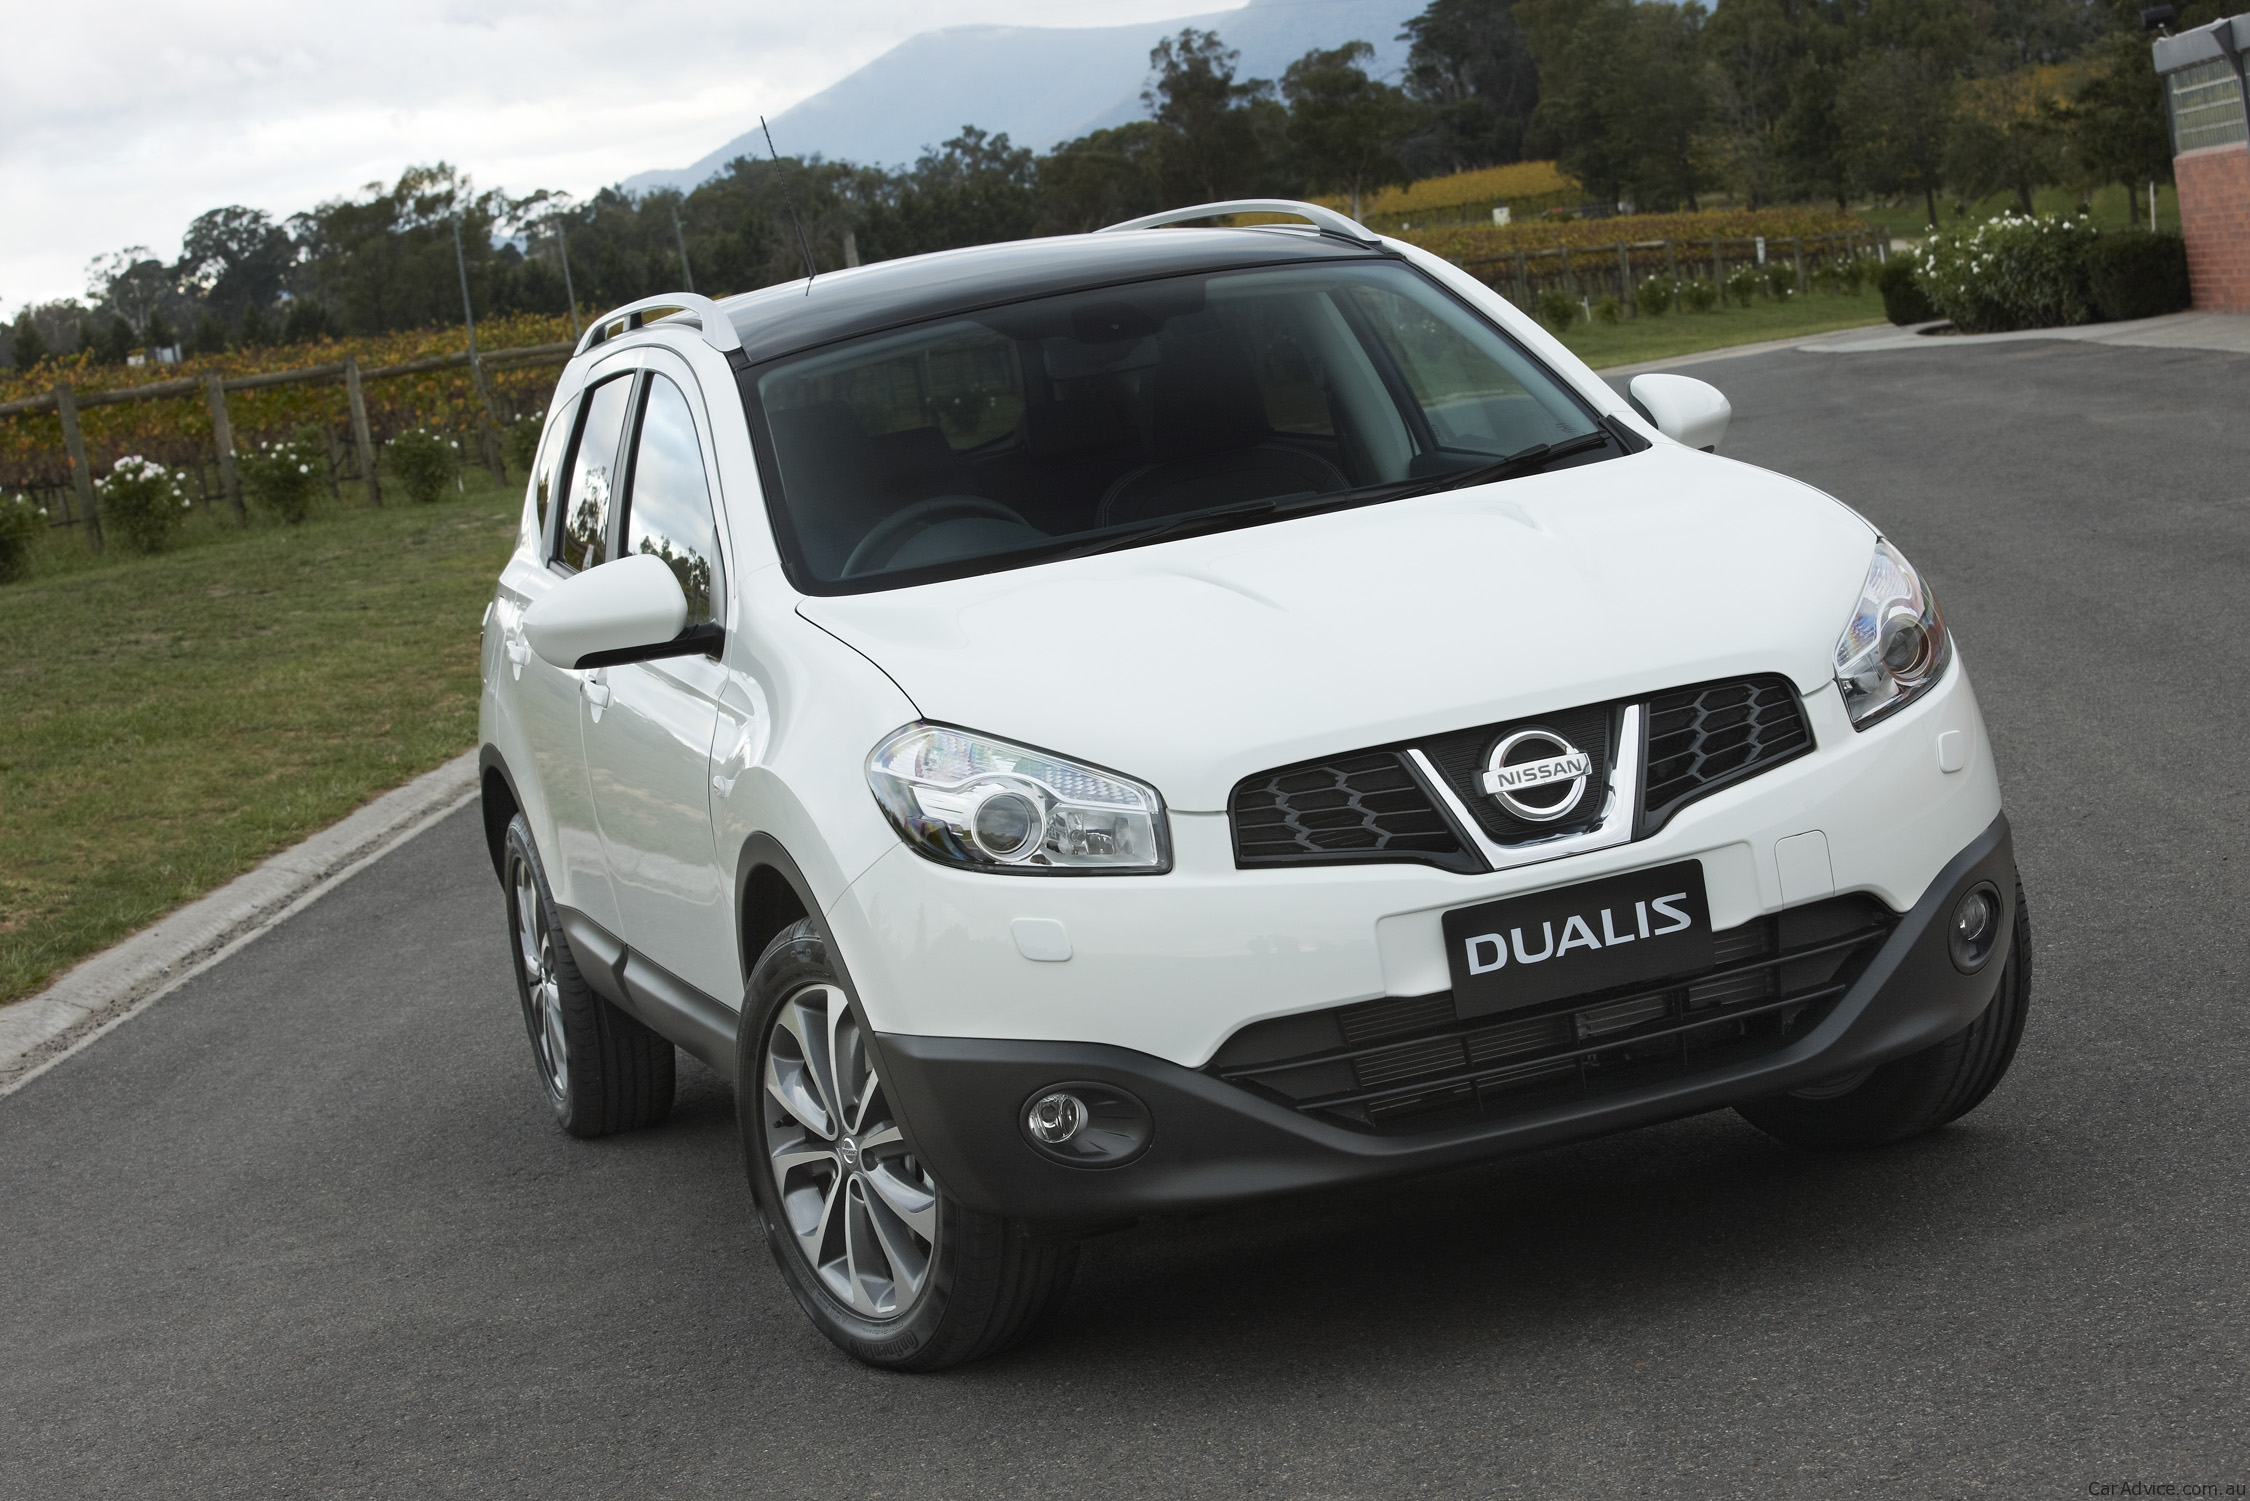 nissan dualis The nissan qashqai is a compact crossover suv produced by the japanese car  manufacturer nissan since 2006 for the first generation, the qashqai was sold  under the name nissan dualis.